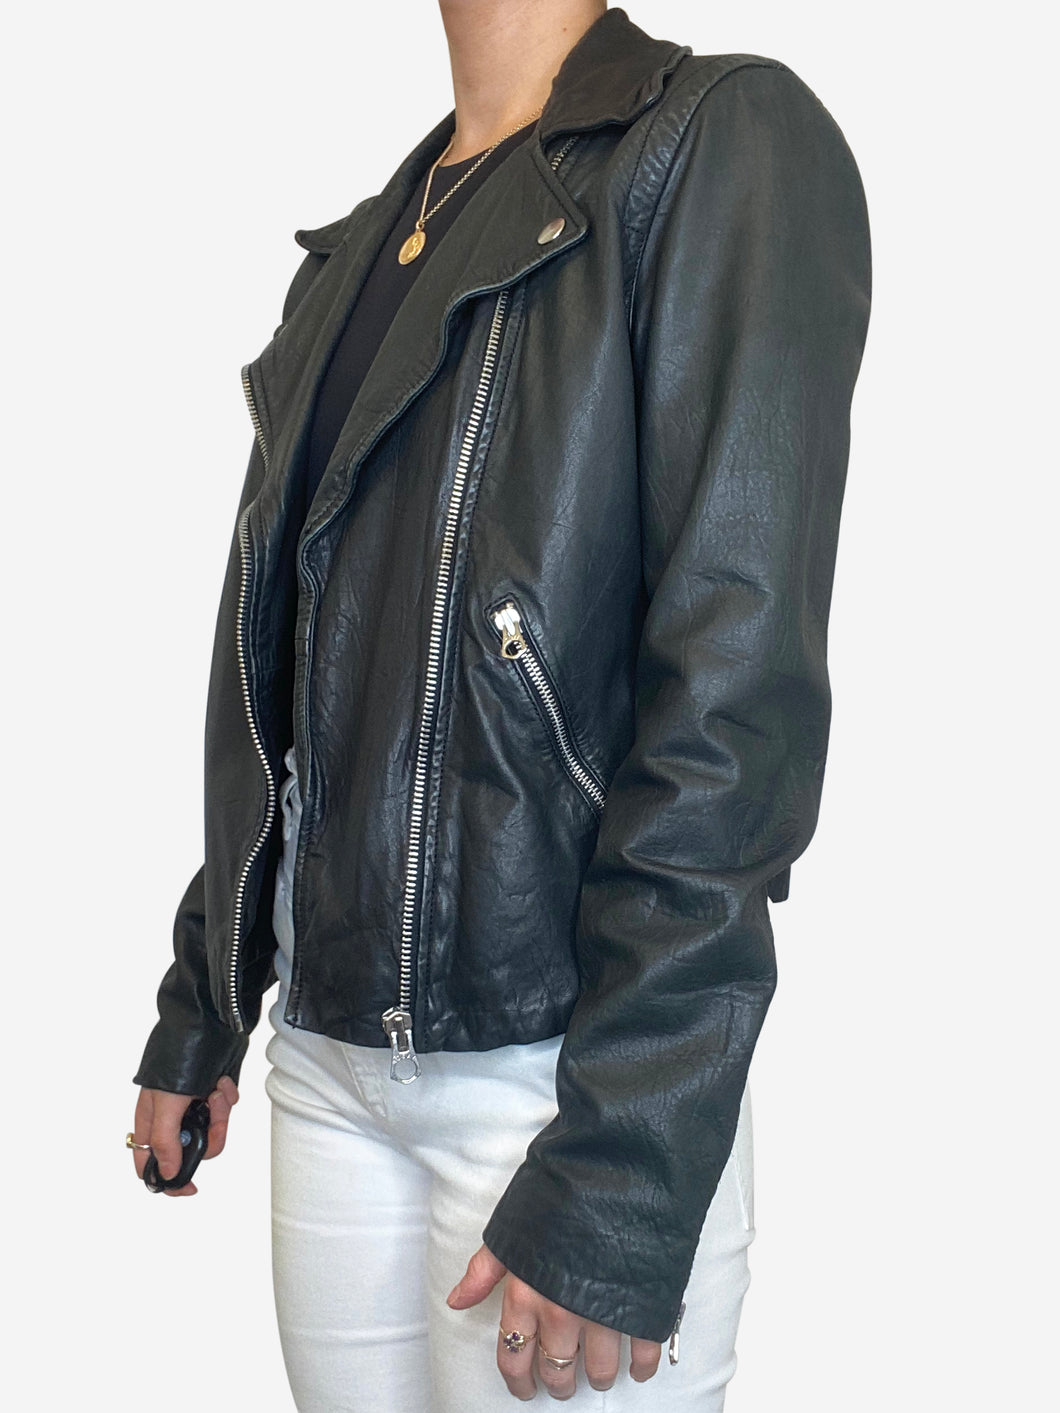 Black leather biker jacket with rose motif - size 10